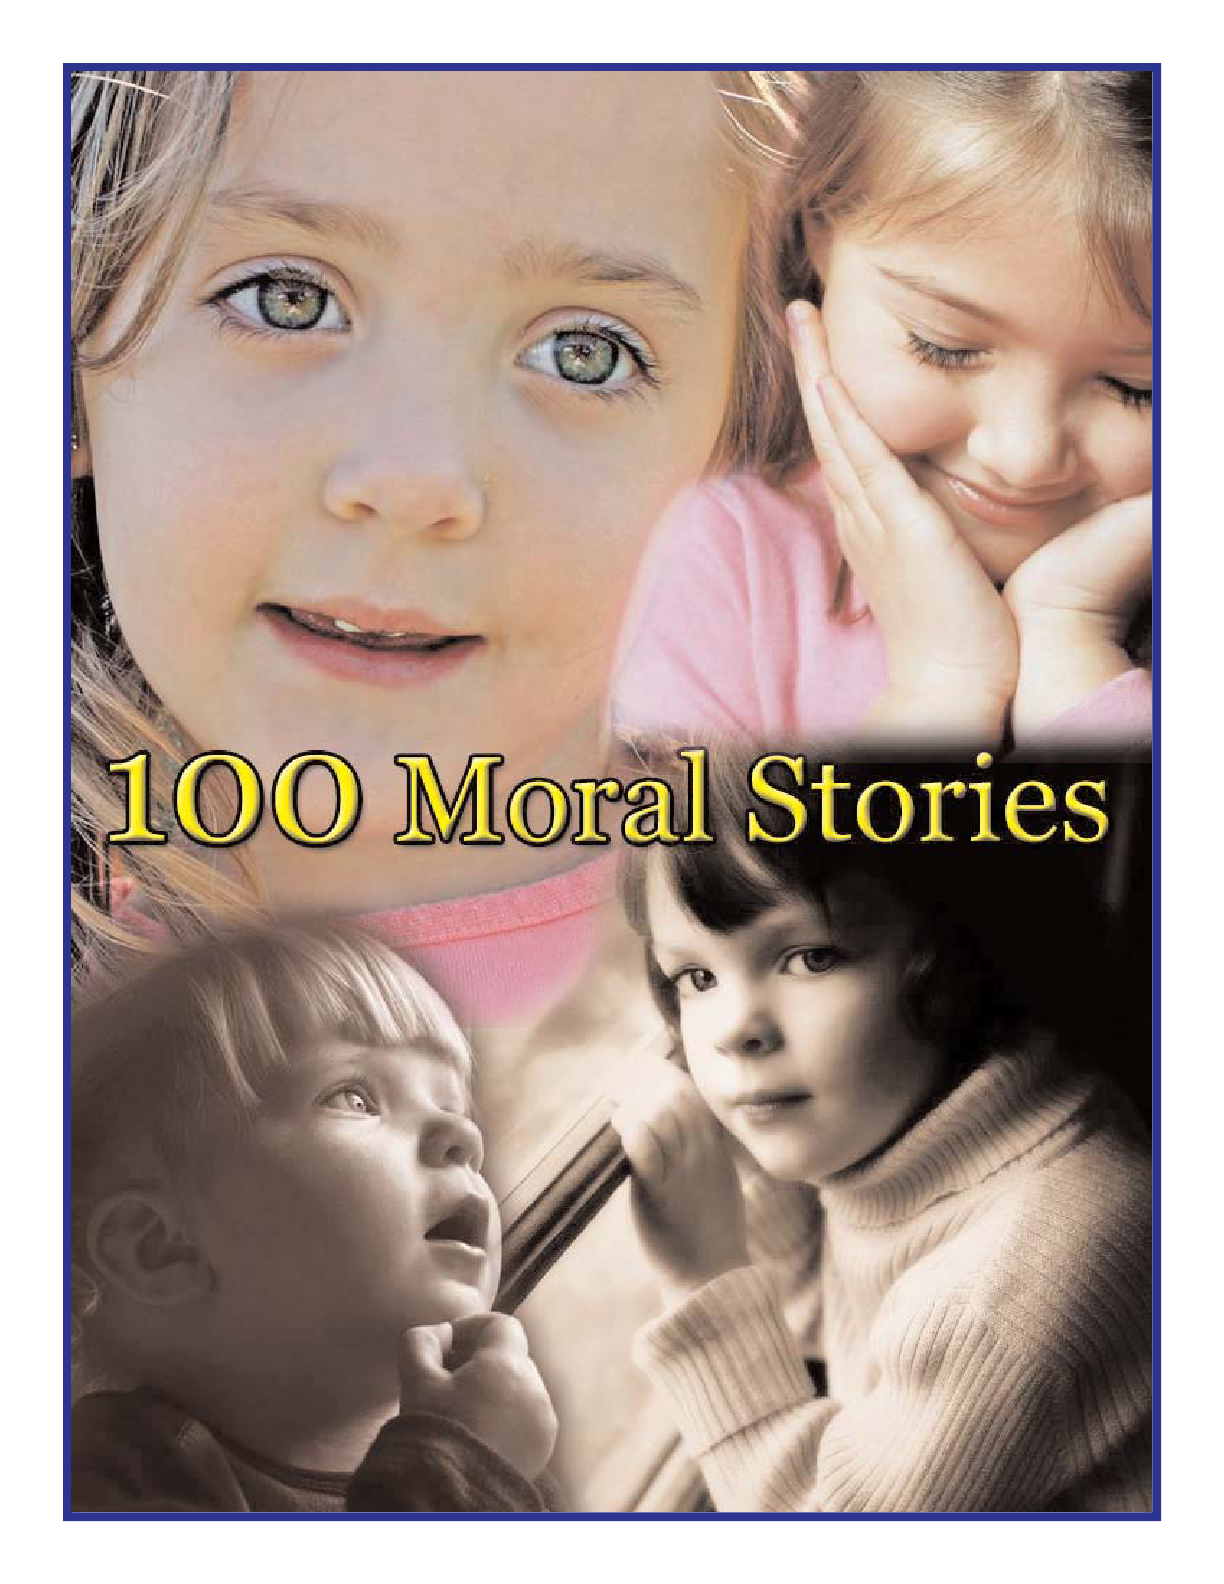 https://ia601507.us.archive.org/11/items/100MoralStories_201504/100MoralStories.pdf